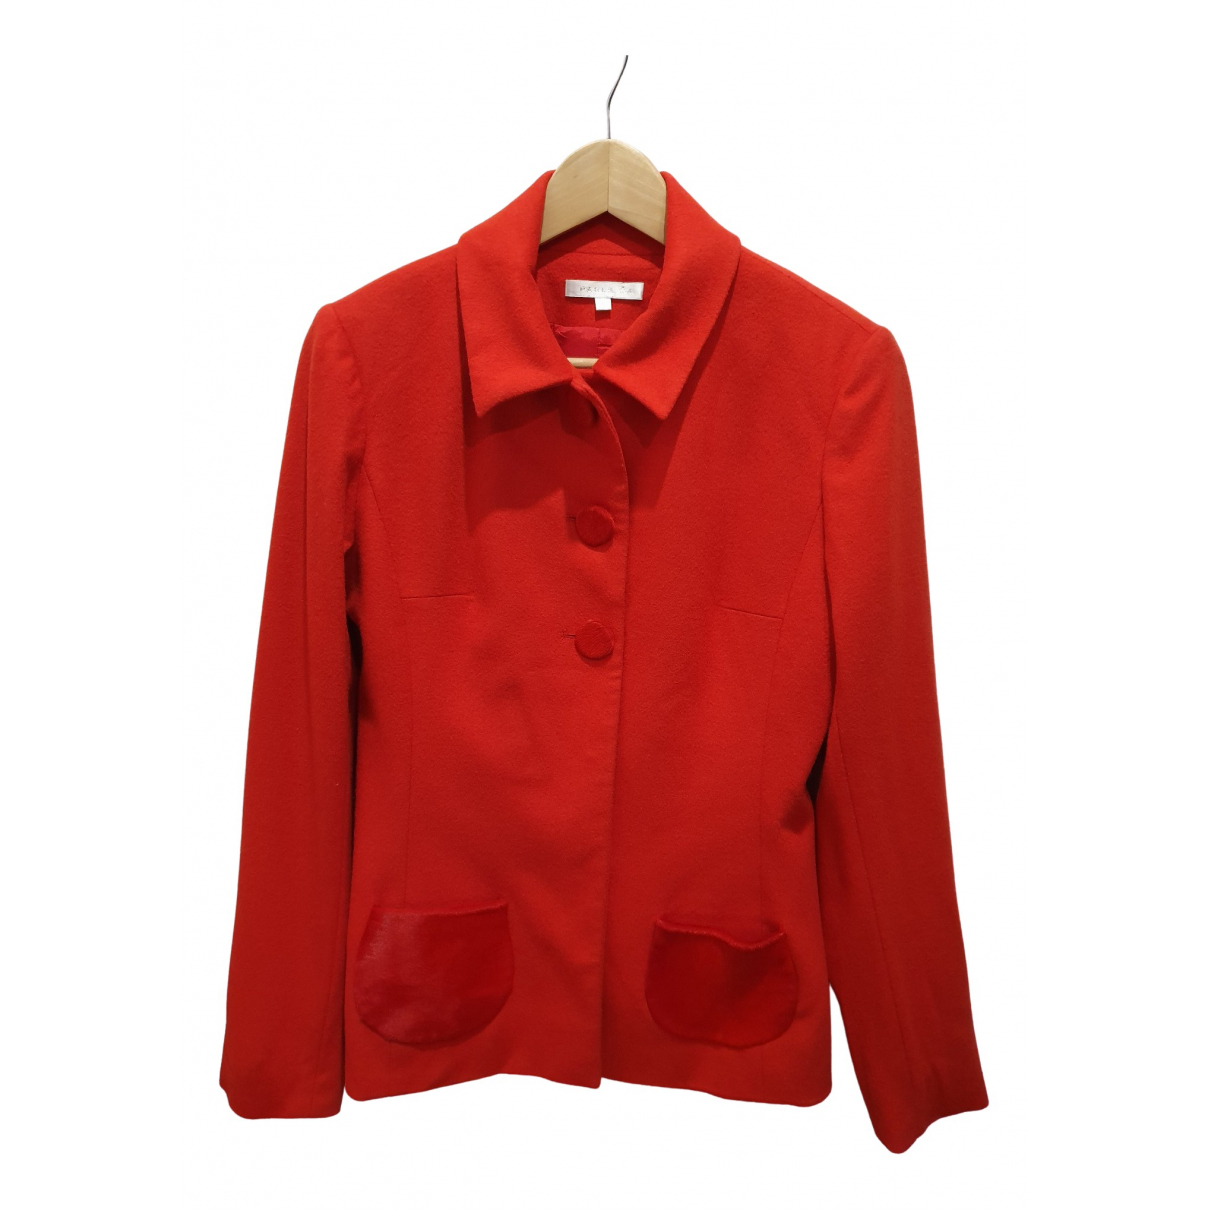 Paule Ka N Red Wool jacket for Women 38 FR